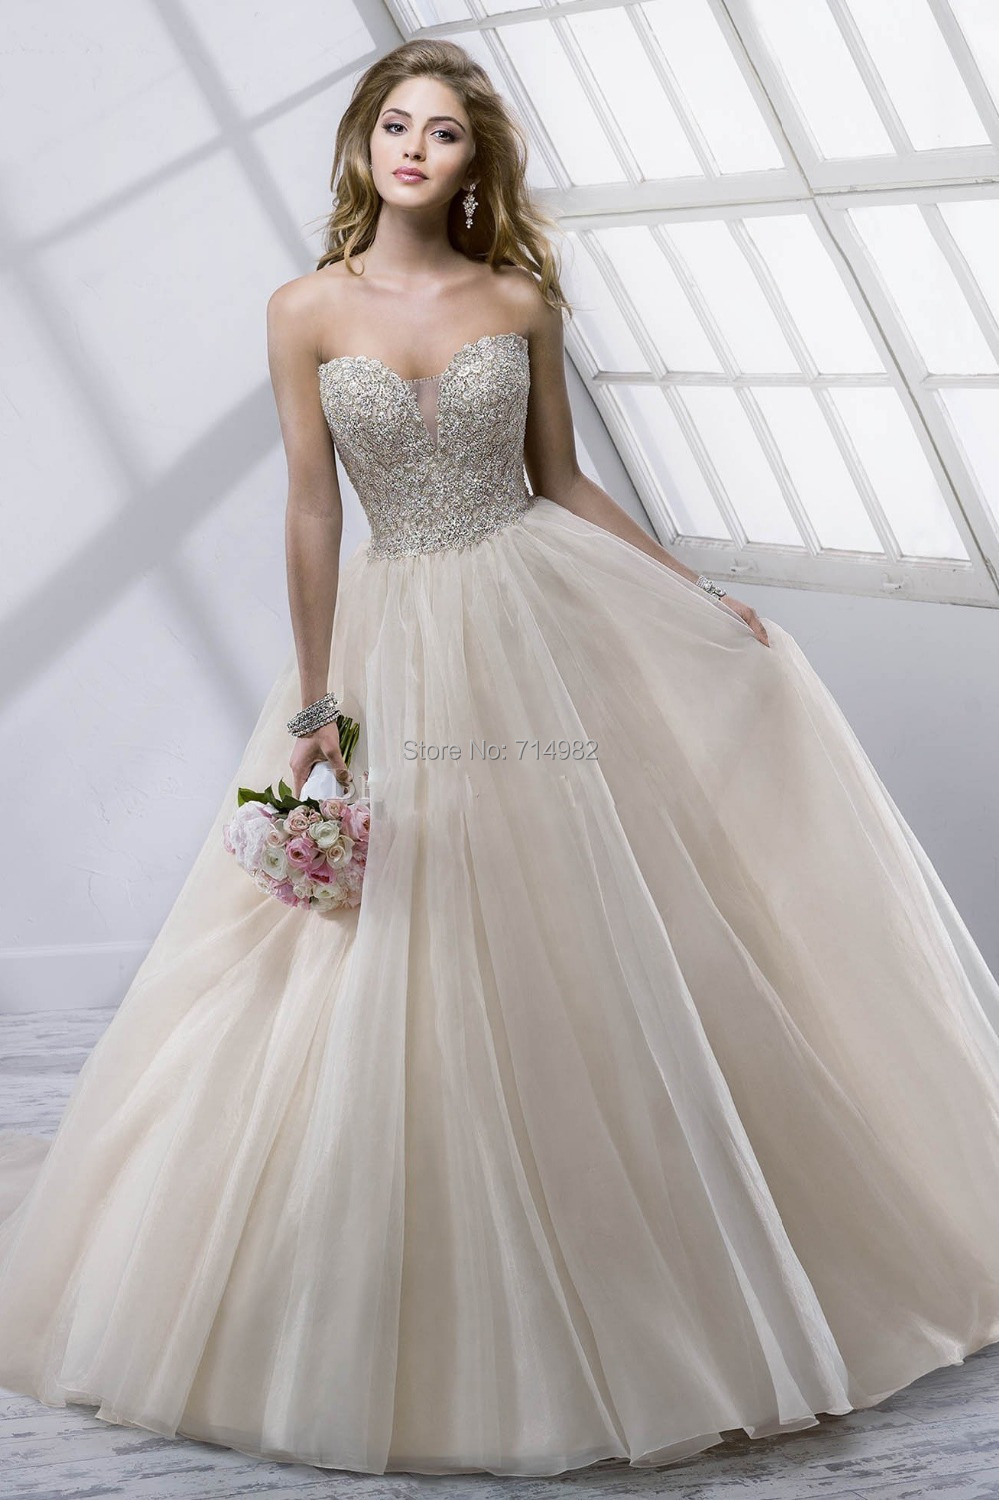 elegant wedding dresses simple elegant wedding dress martina liana simple wedding dress